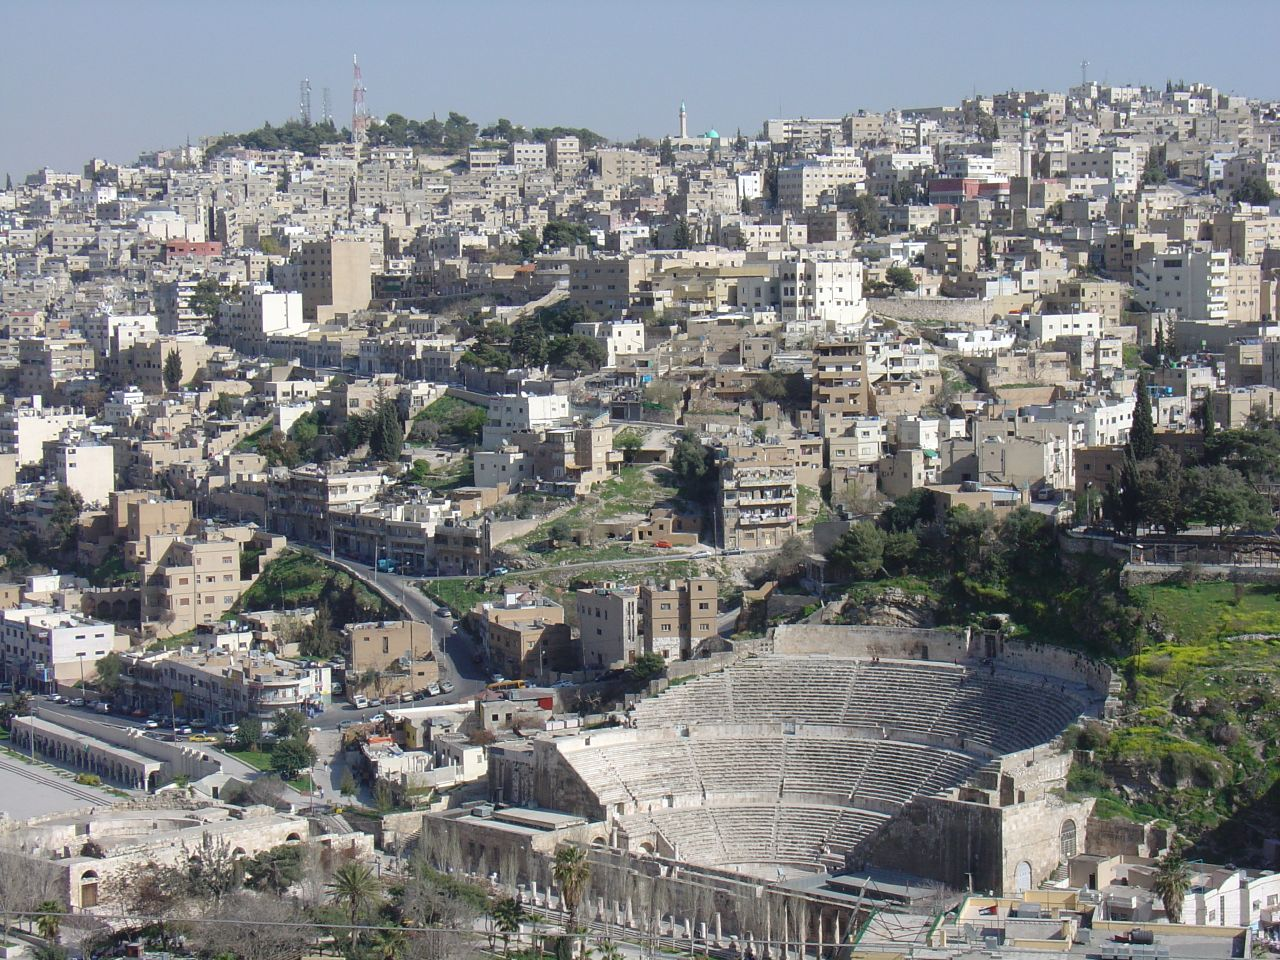 Amman view by CC user amanderson on Flickr